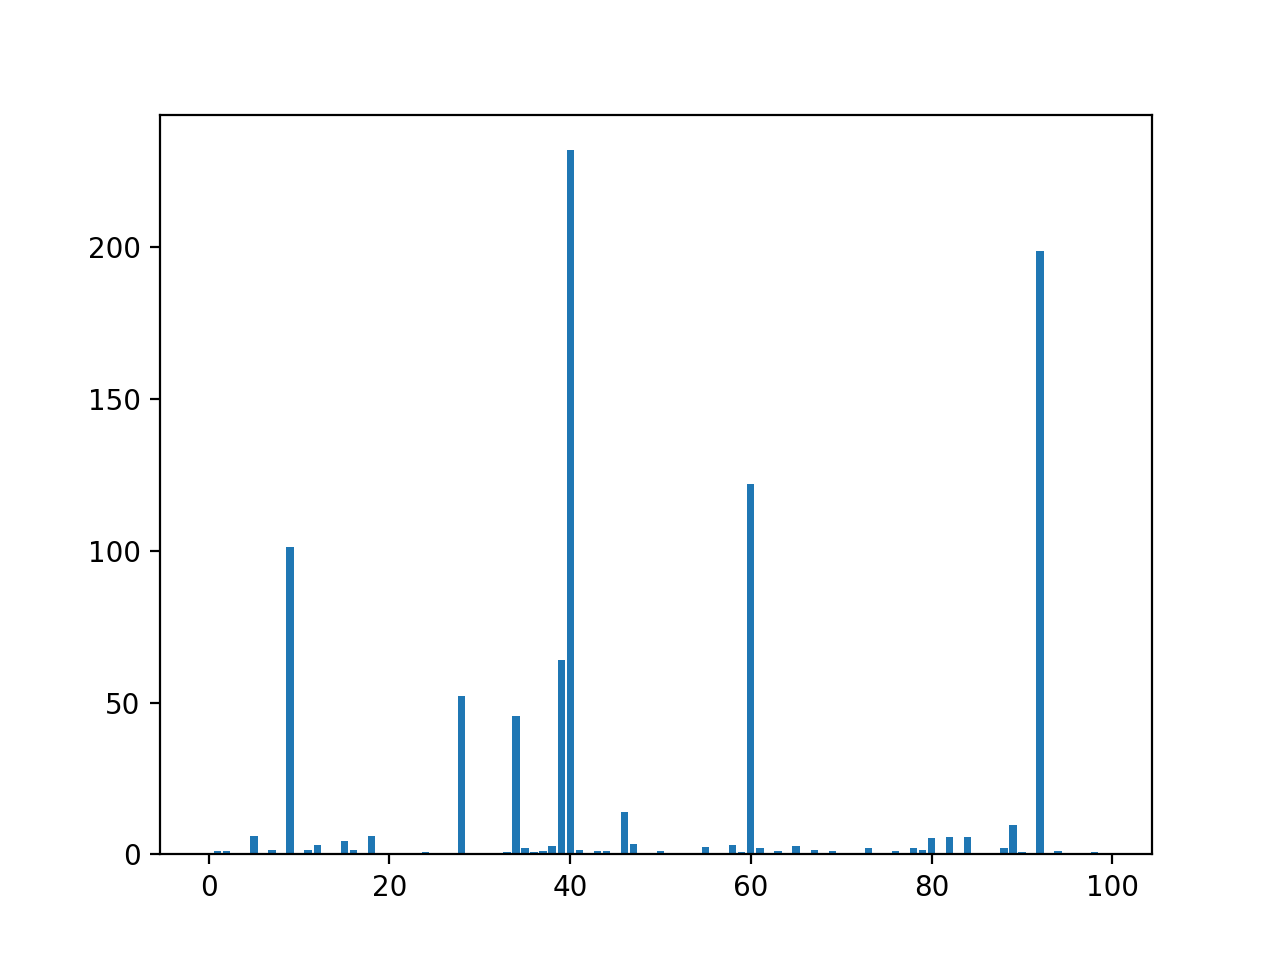 Bar Chart of the Input Features (x) vs. Correlation Feature Importance (y)